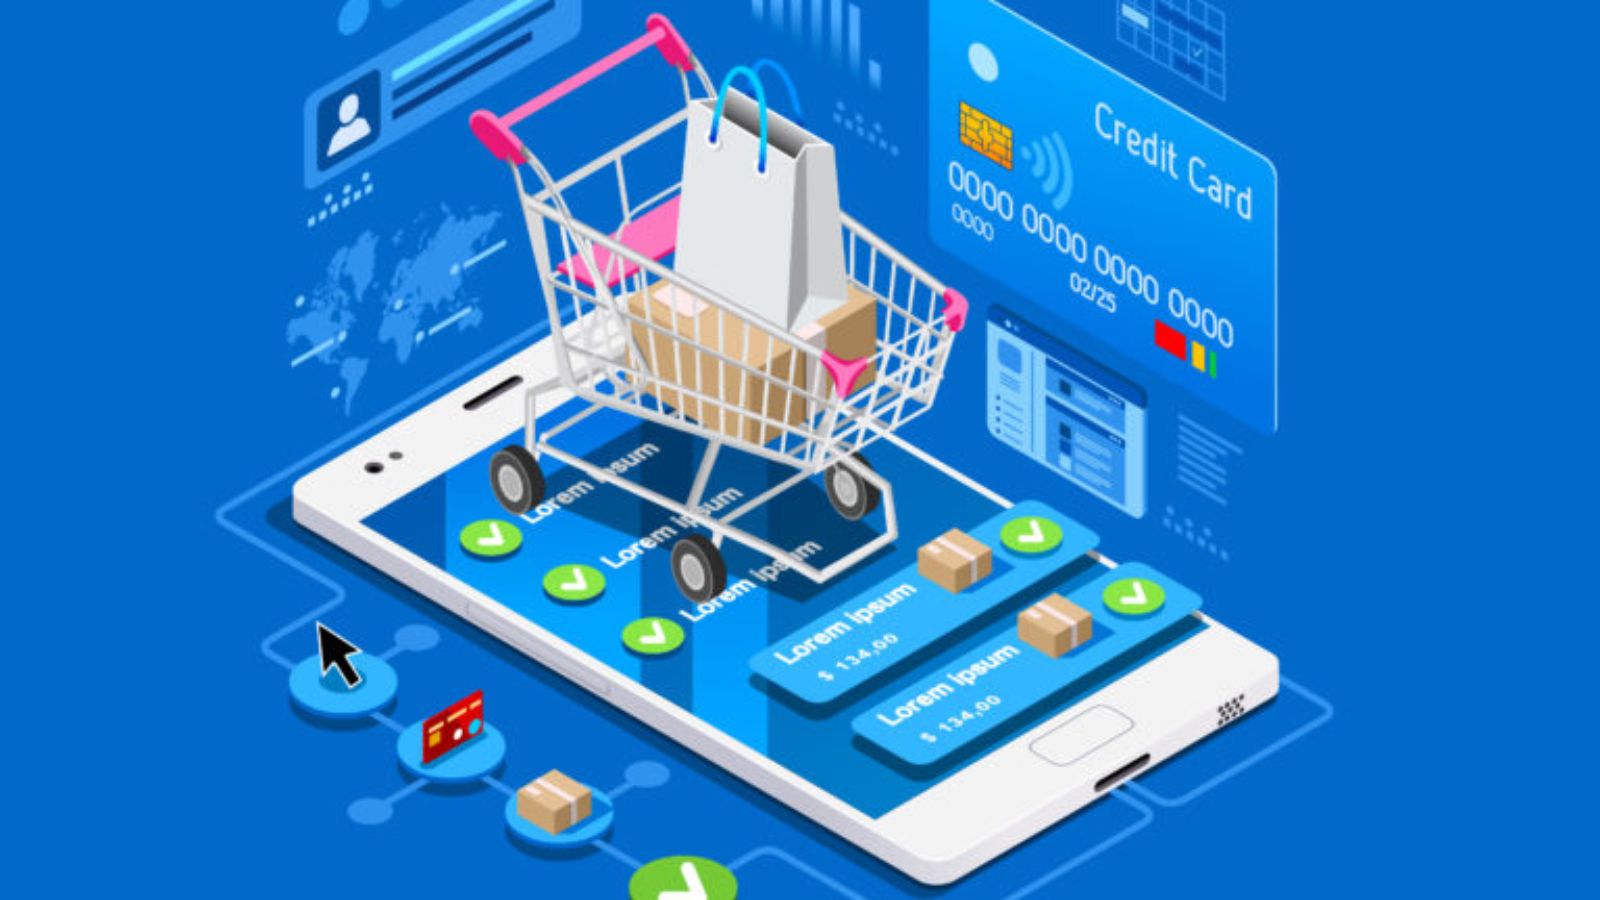 Illustration of an ecommerce shopping cart